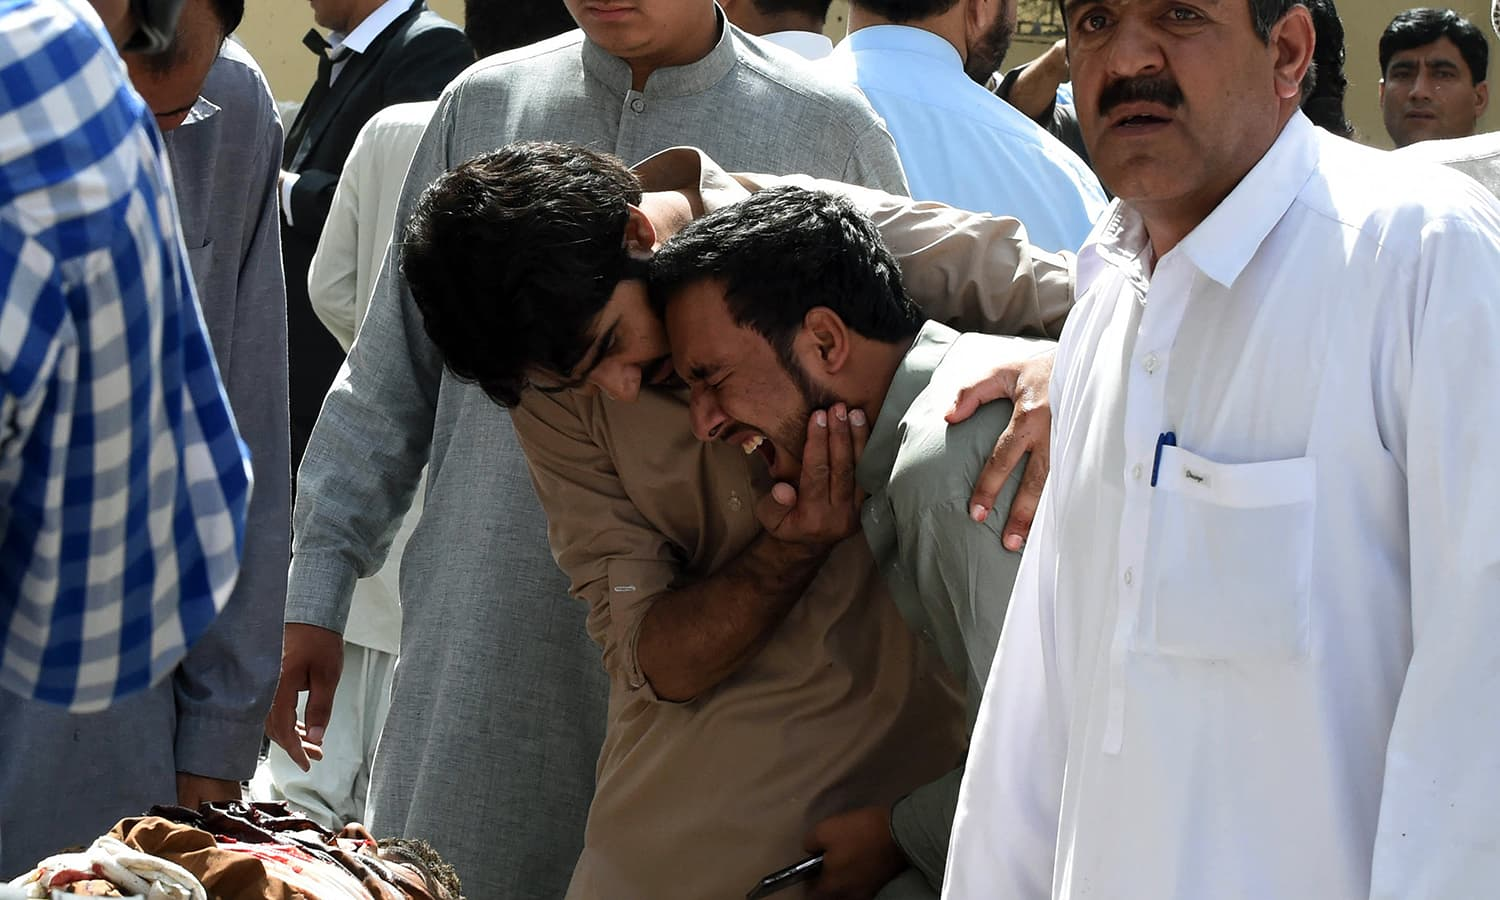 Local journalists react over the body of a news cameraman after a bomb explosion at a government hospital premises in Quetta on August 8, 2016.—AFP